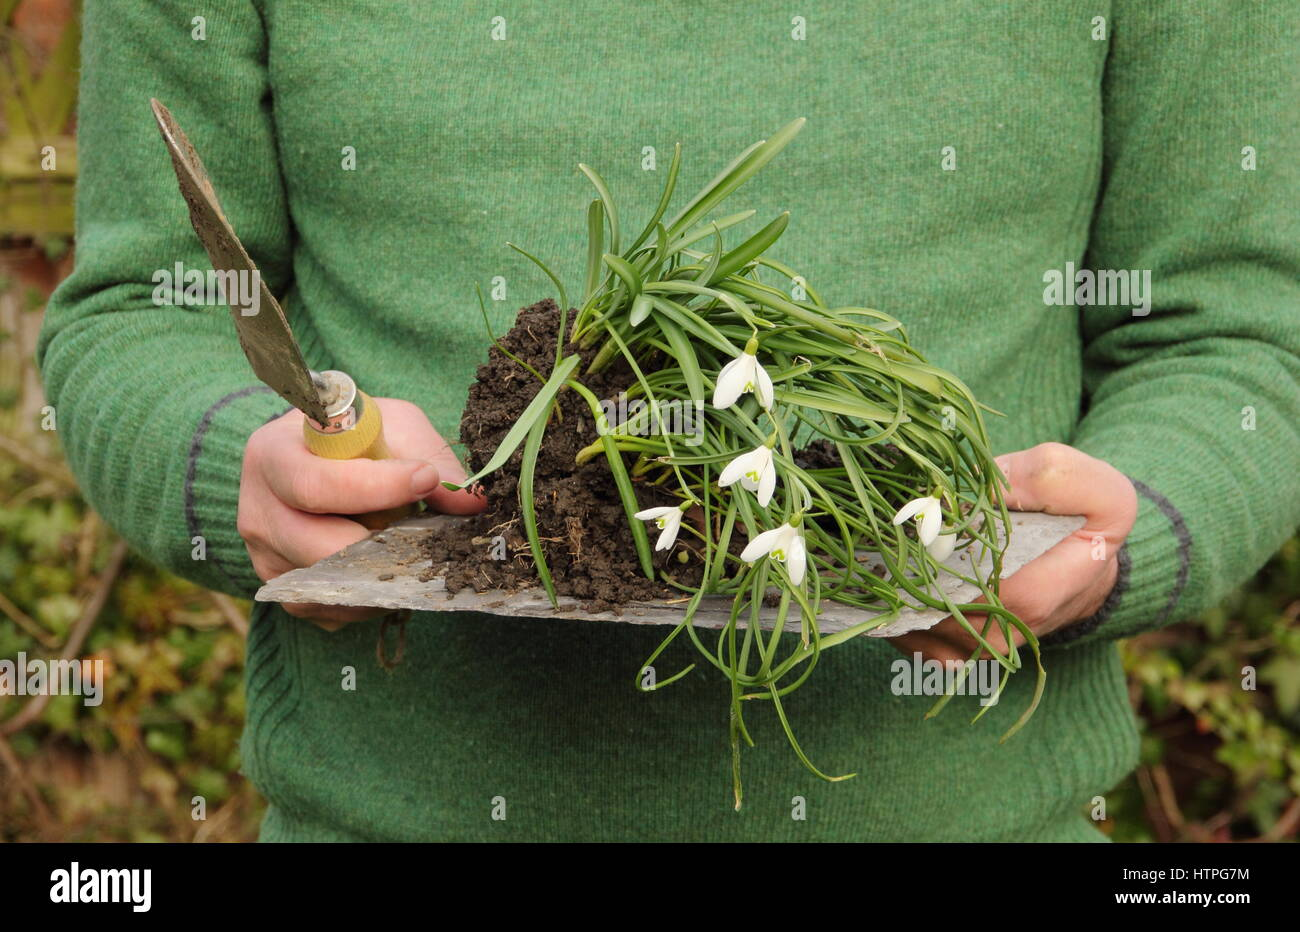 Gardener carries lifted snowdrops (galanthus nivalis) that are 'in the green' - still in leaf - ready for - Stock Image